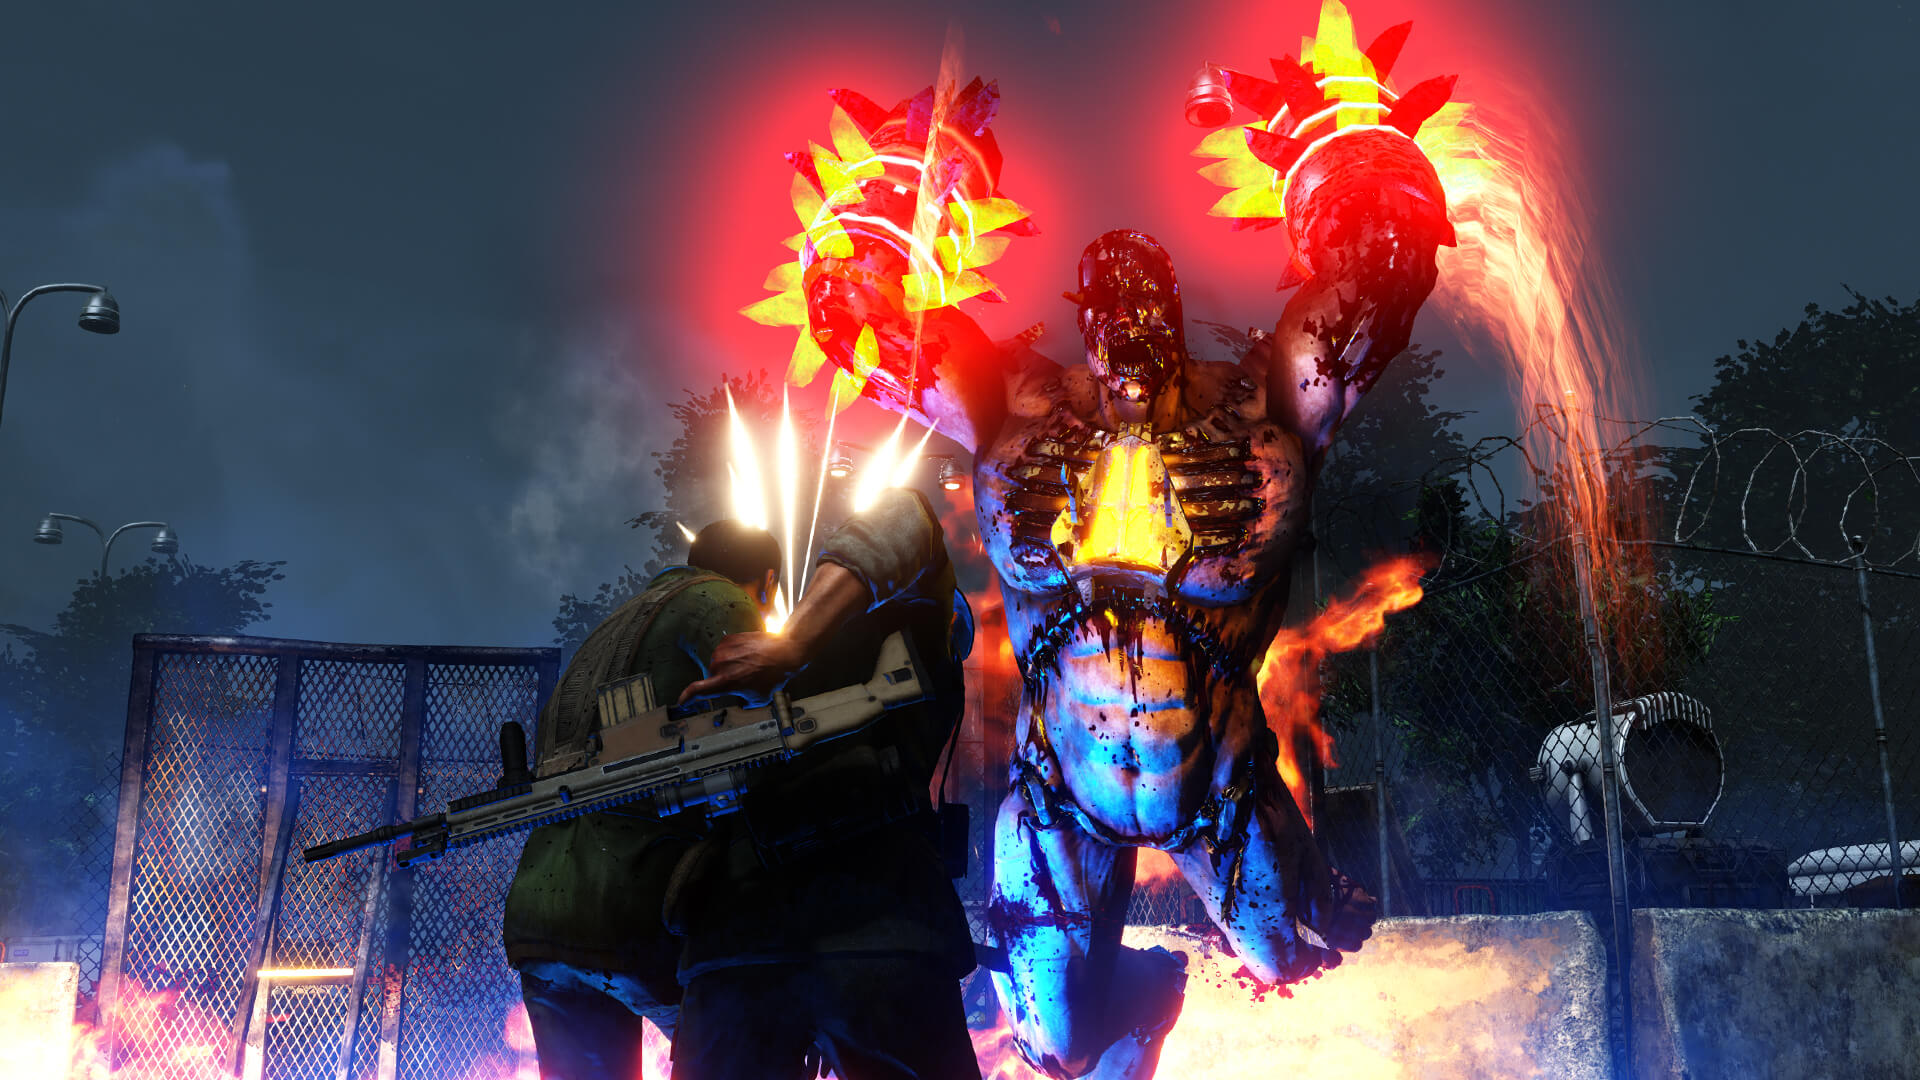 Killing Floor 2 For Ps4 Xb1 Pc Reviews Opencritic